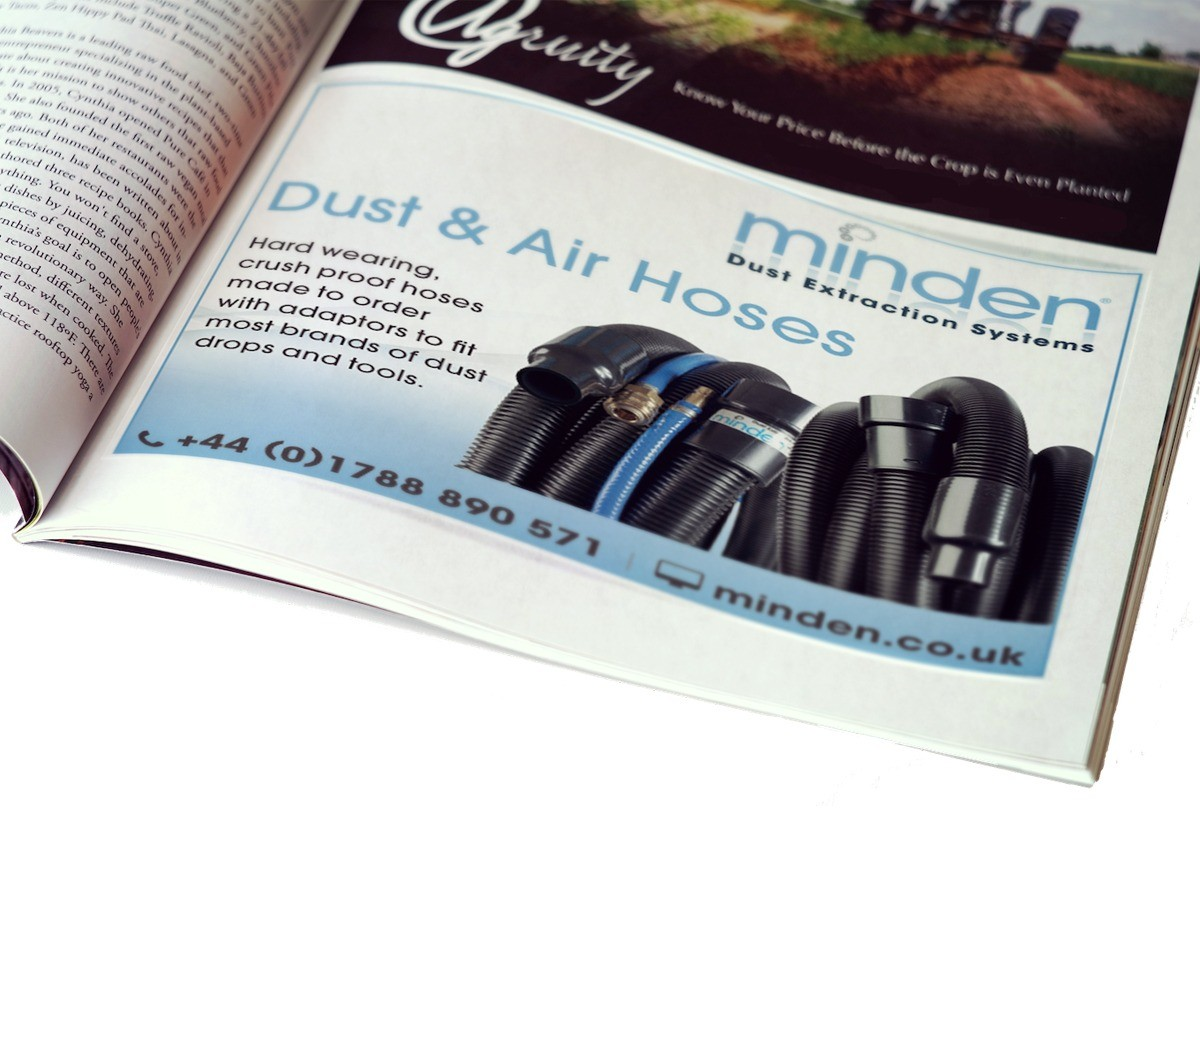 An image showing the design for a half page advert for Minden Systems.